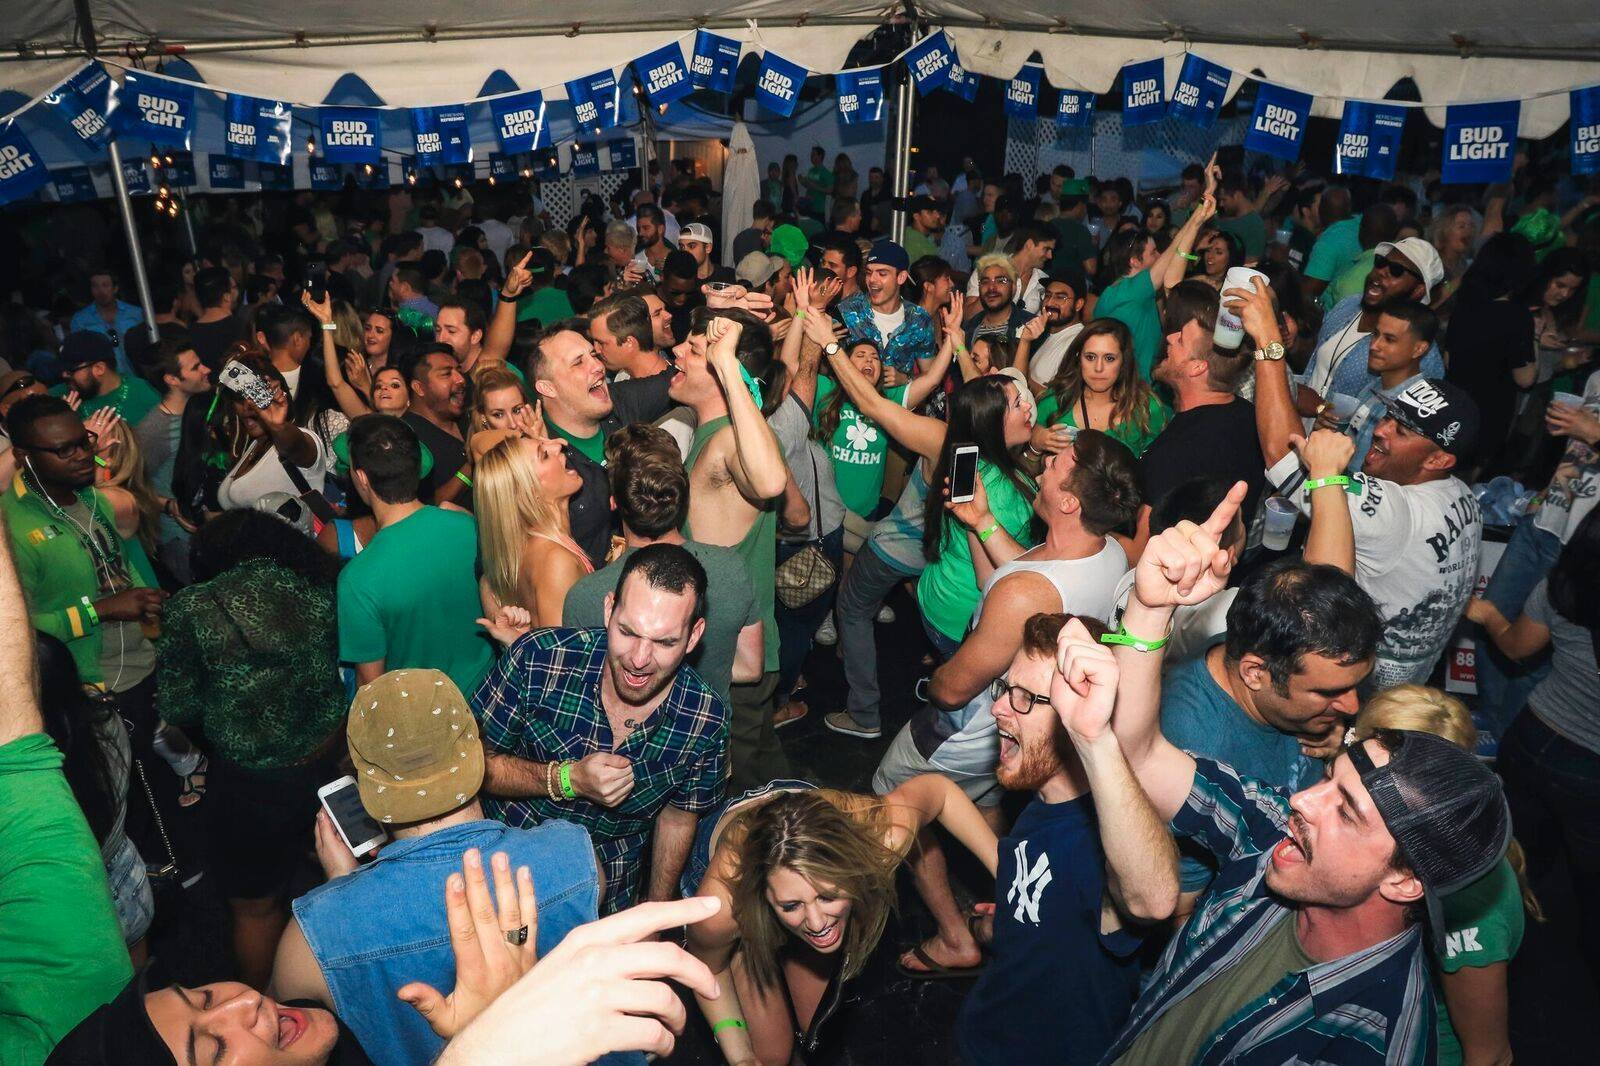 St. Paddy's Day Block Party at Rock & Reilly's